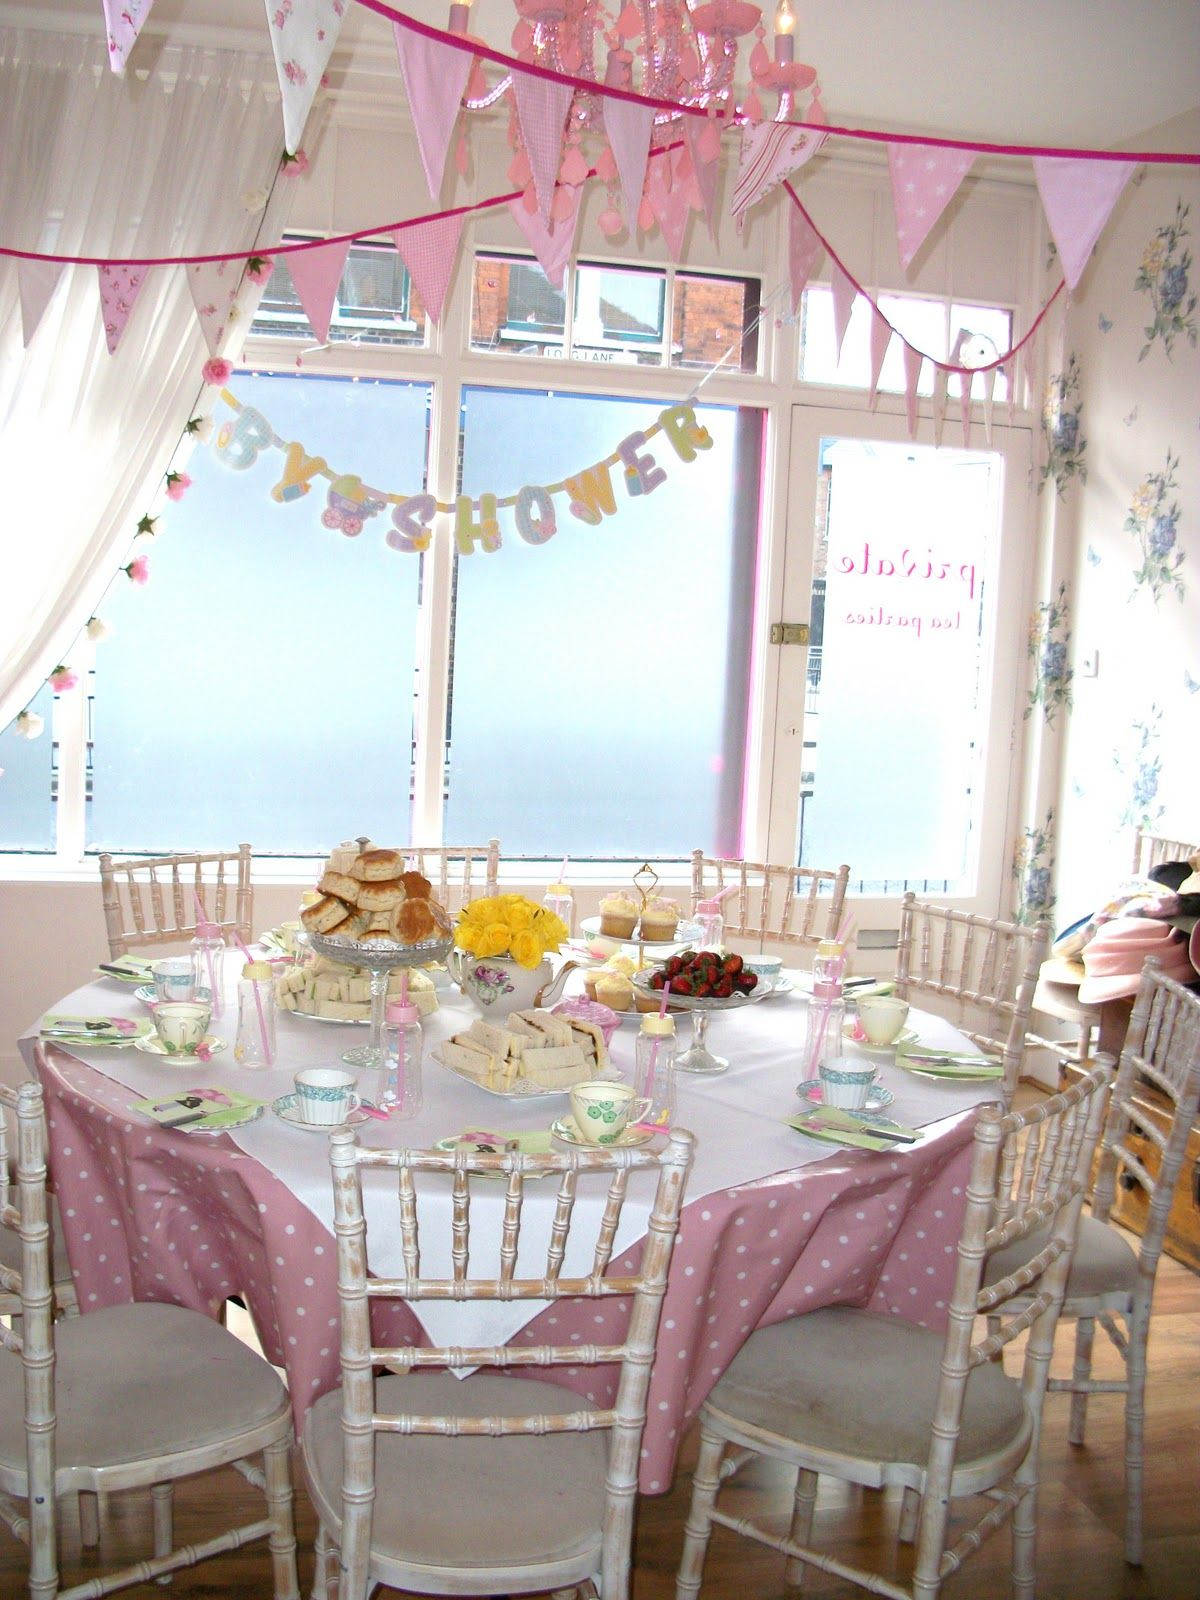 baby shower party venue - Google Search